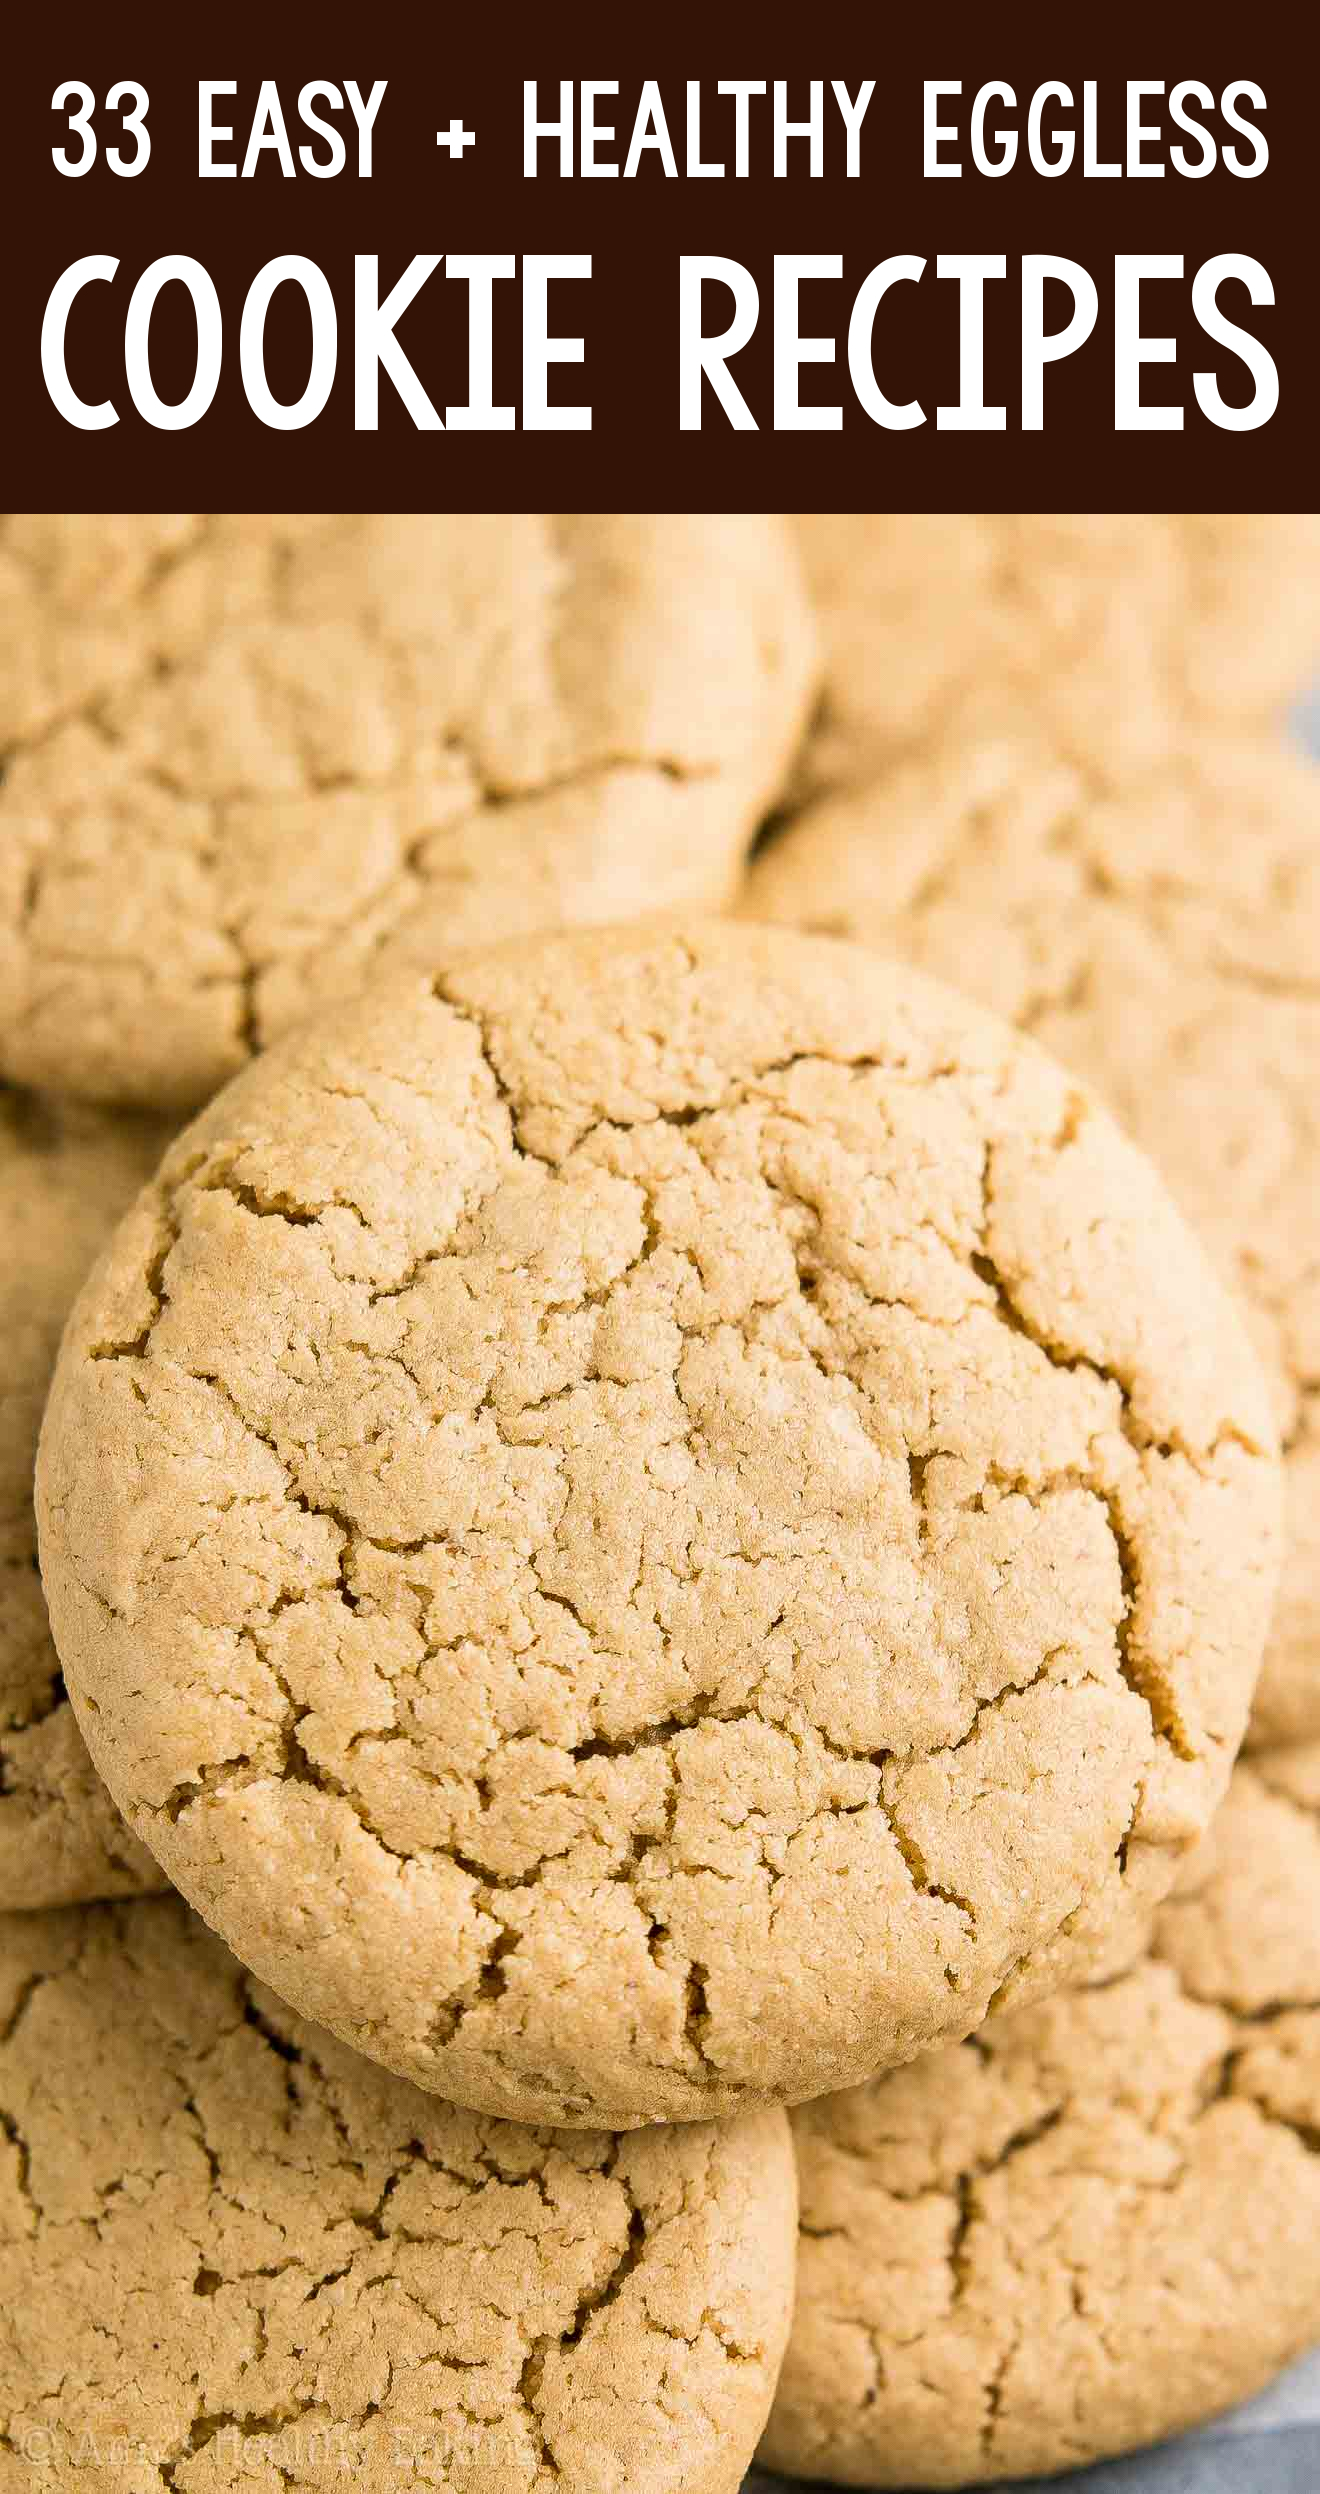 the BEST EVER healthy dairy-free eggless flourless vegan peanut butter cookies with no oil or butter